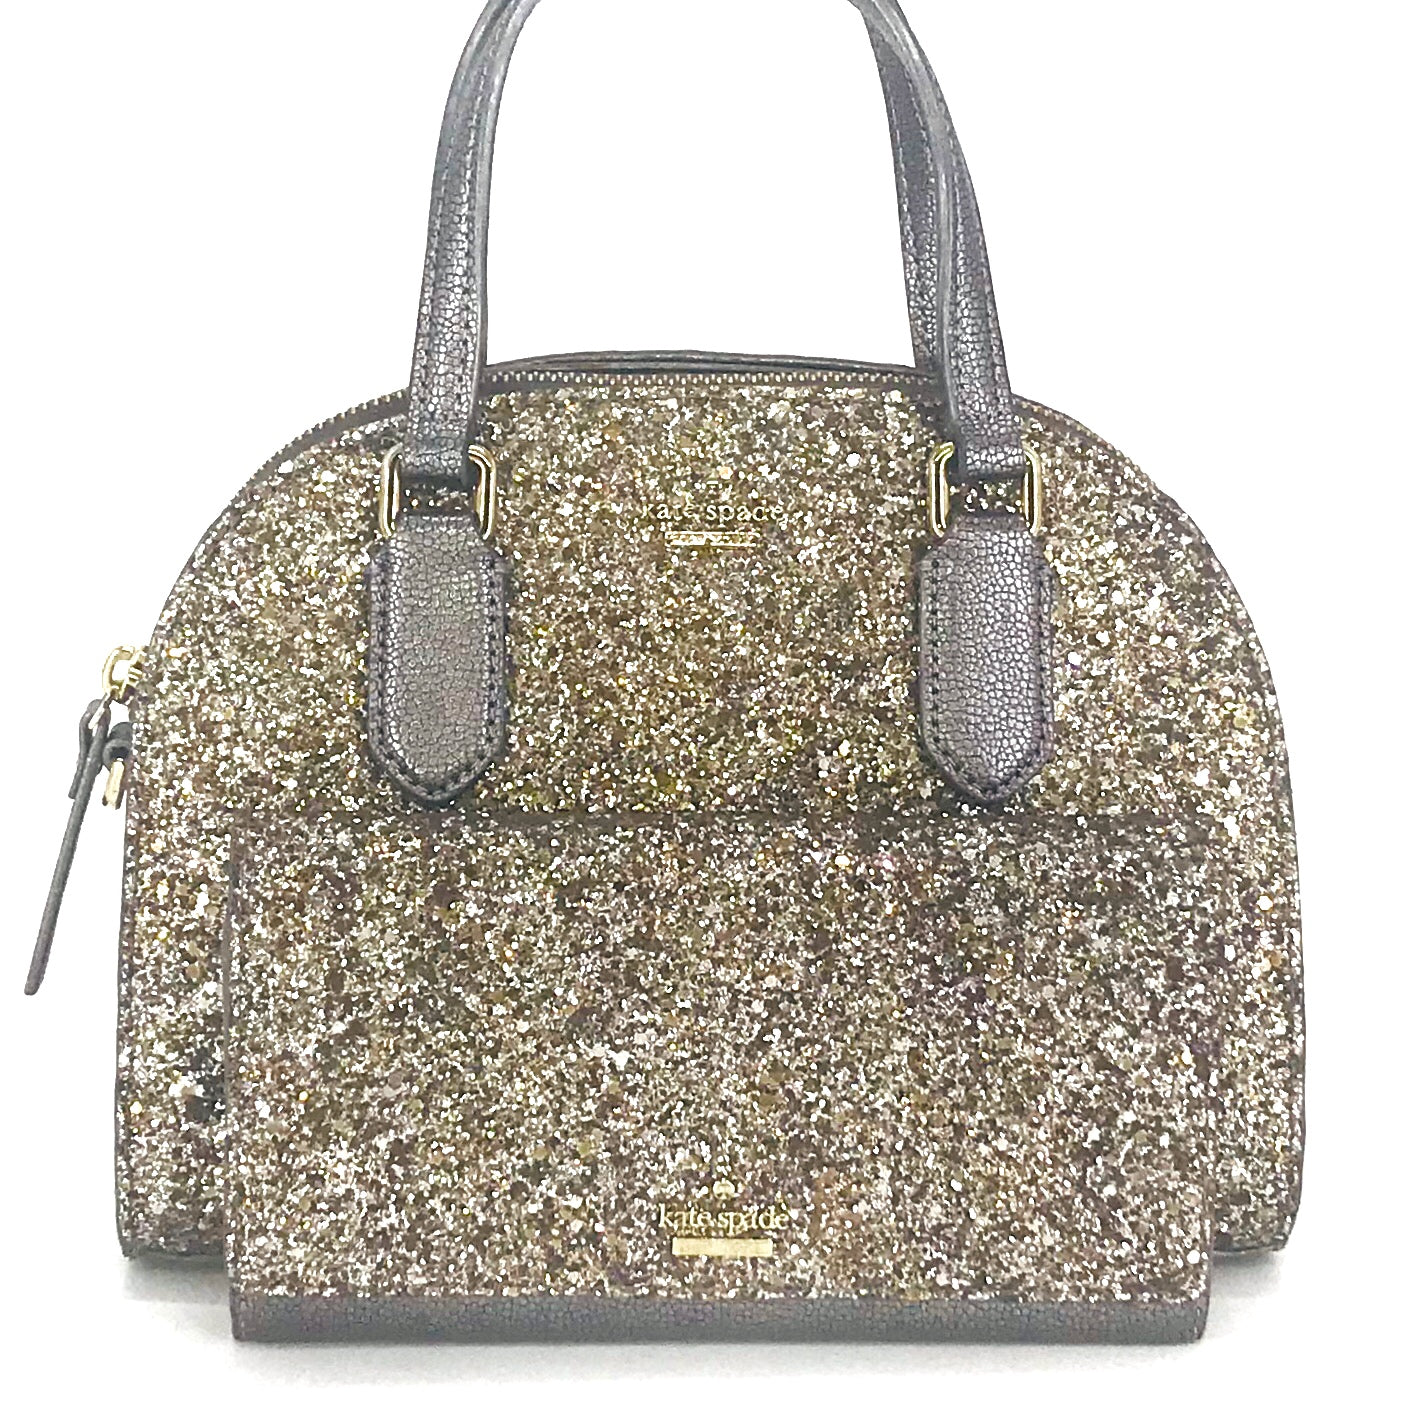 2PCS Kate Spade Mini Reiley Glitter Satchel Wallet Set